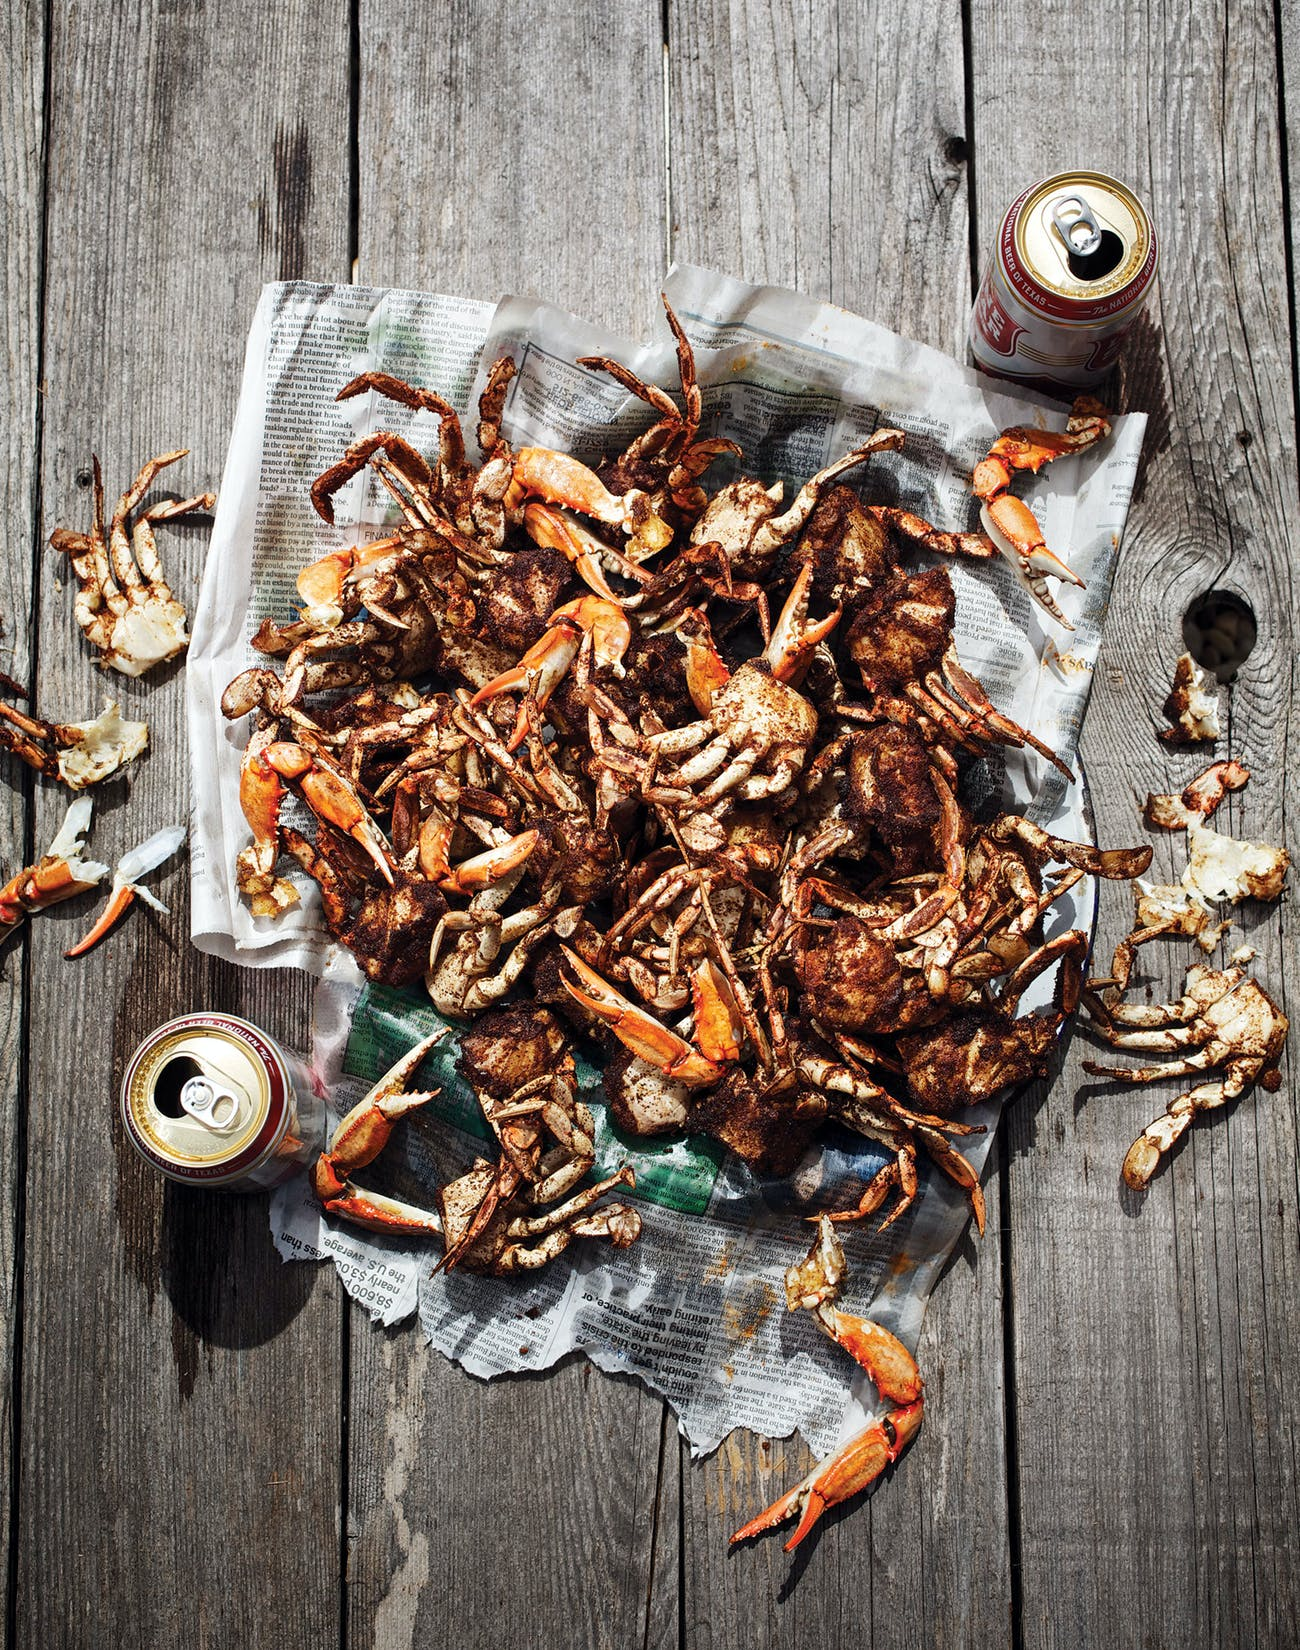 Barbecued crabs